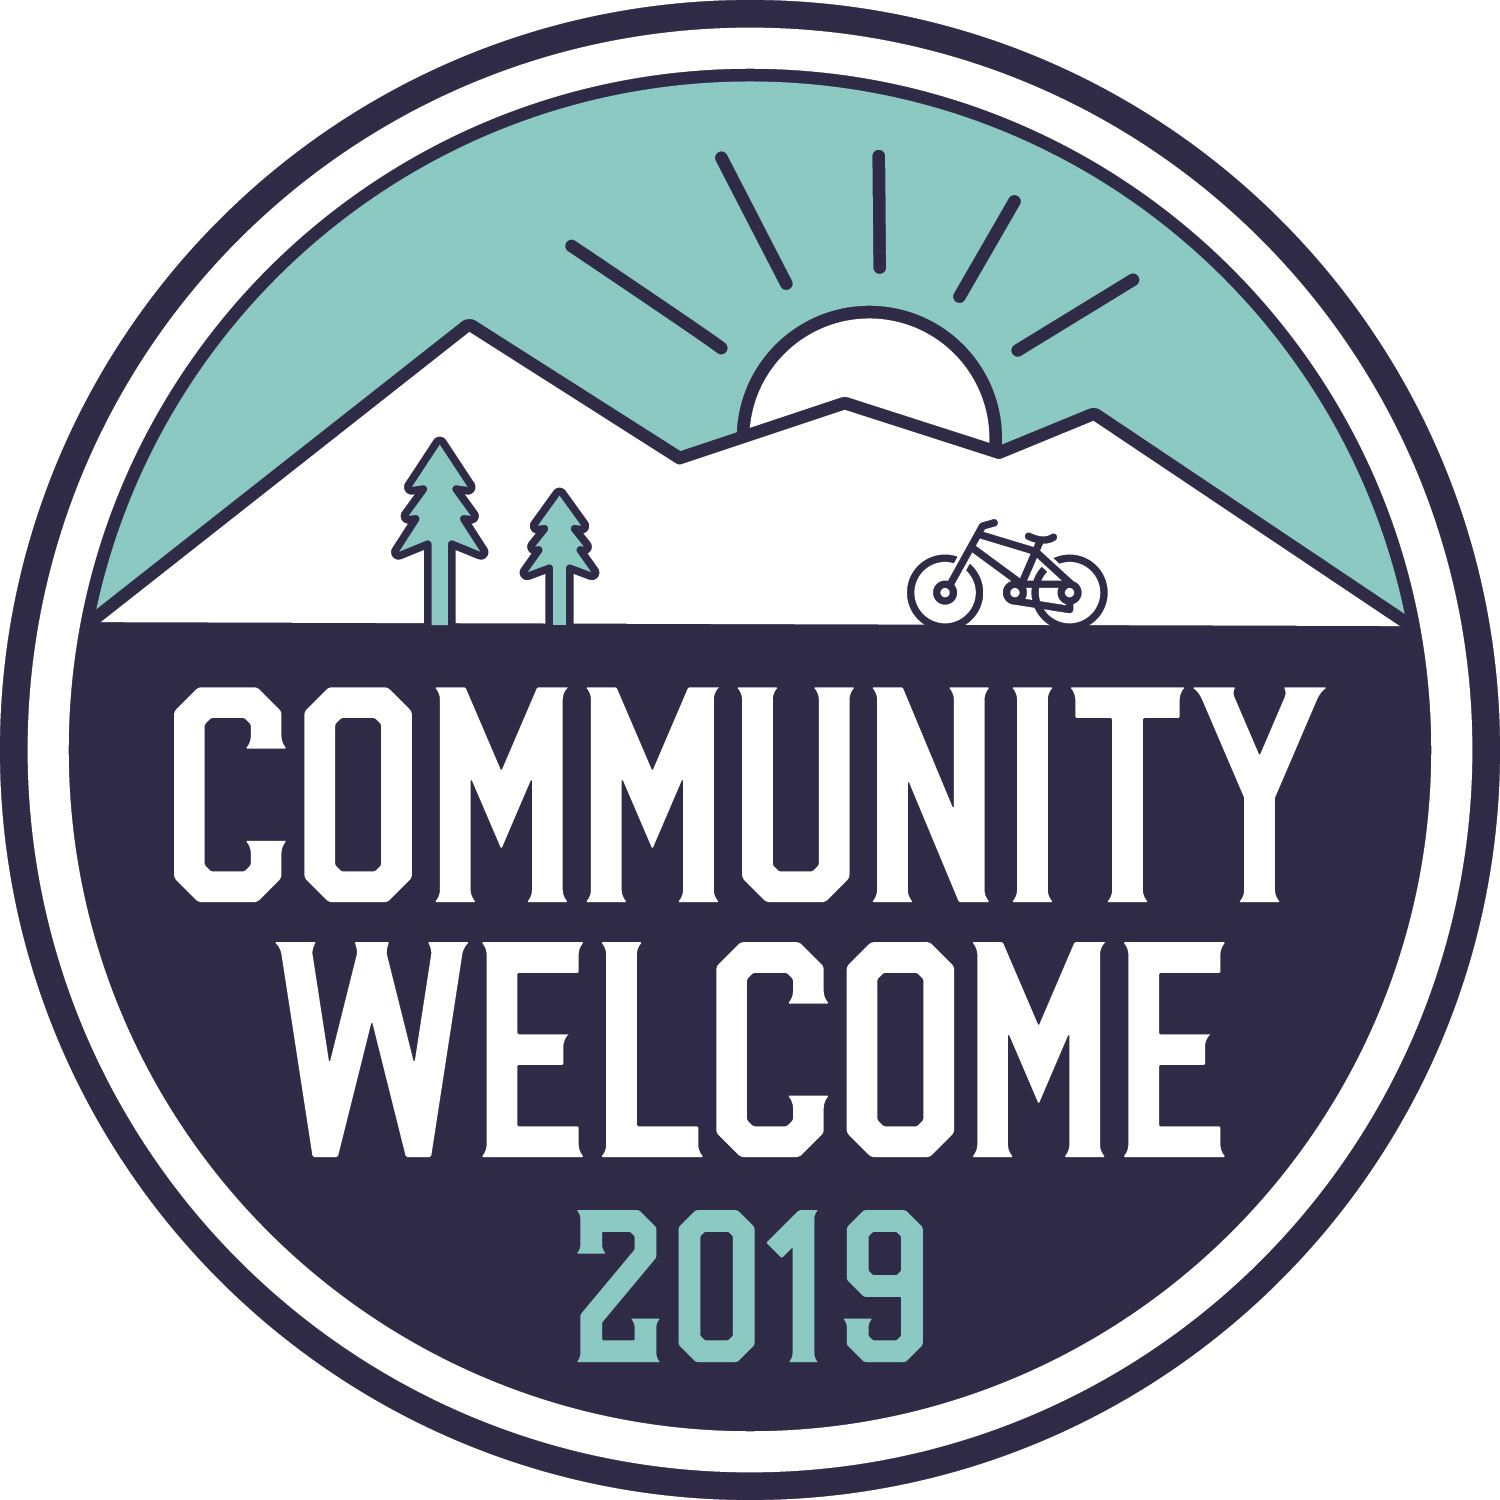 communitywelcome_2019